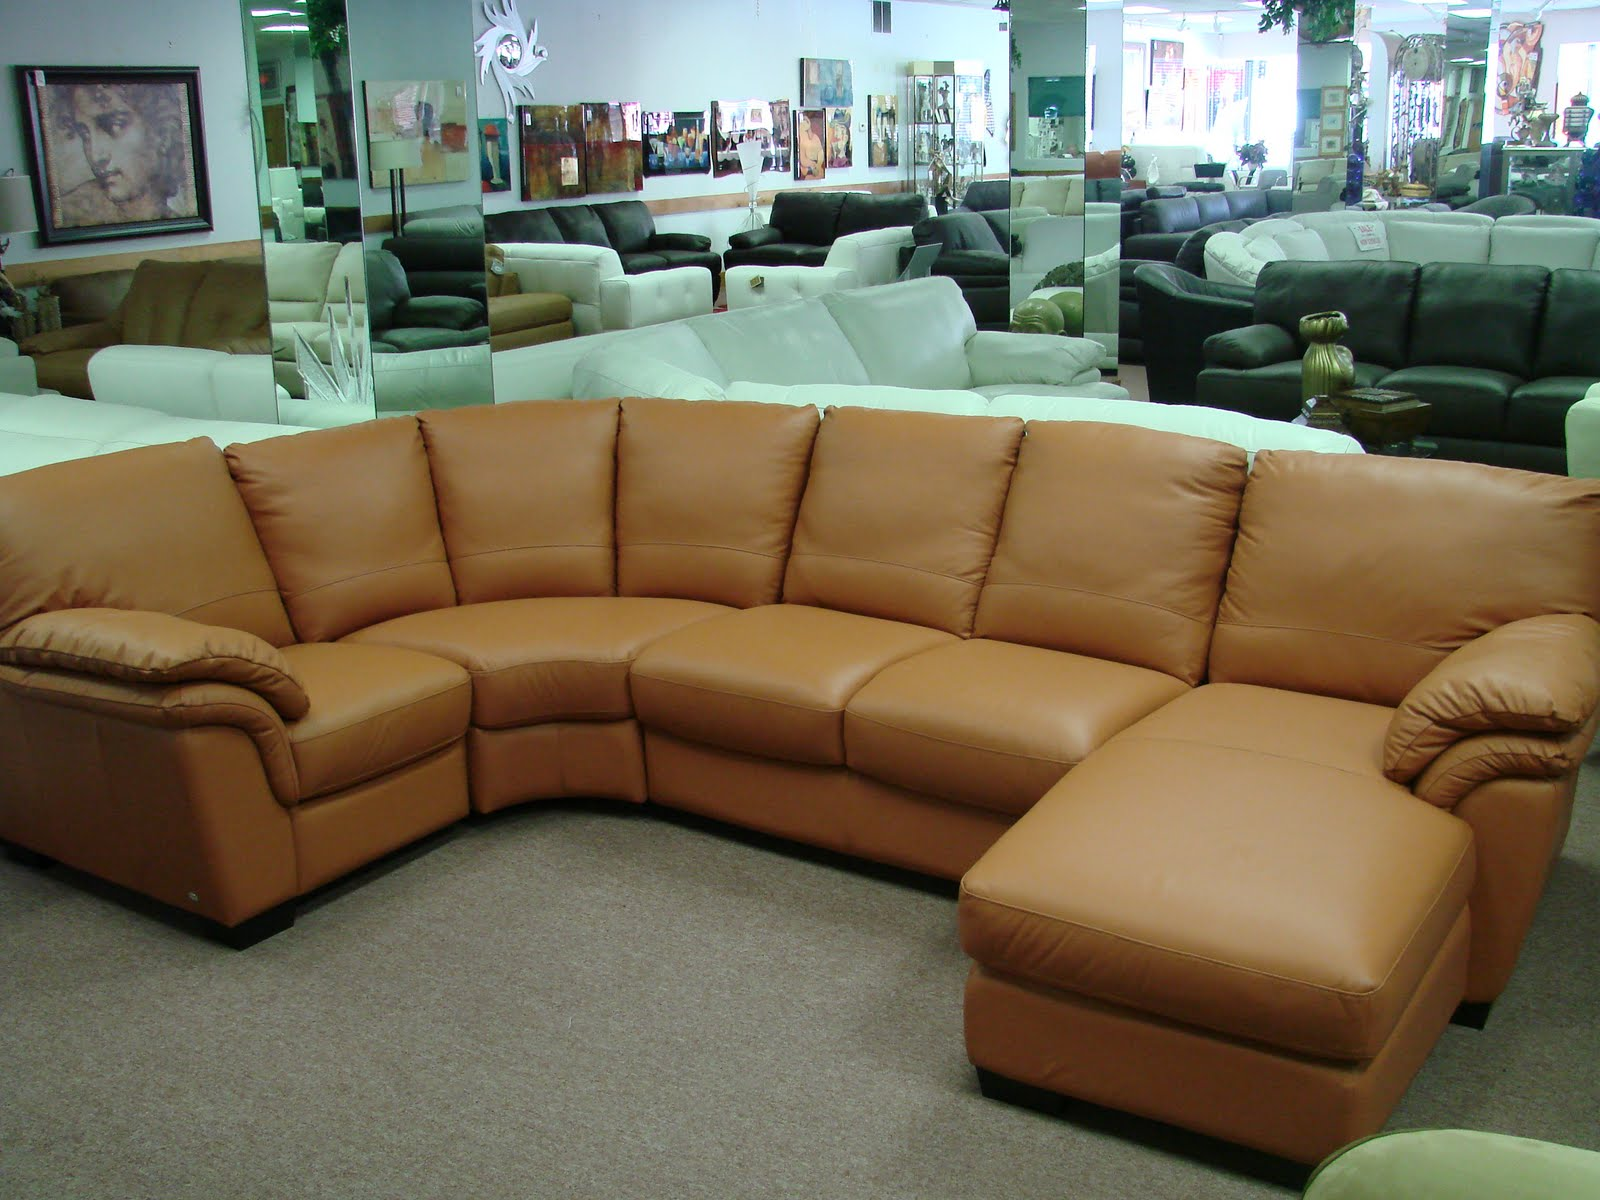 But if you're looking for quality service and products, you might have trouble at these stores. Natuzzi Leather Sofas & Sectionals by Interior Concepts ...